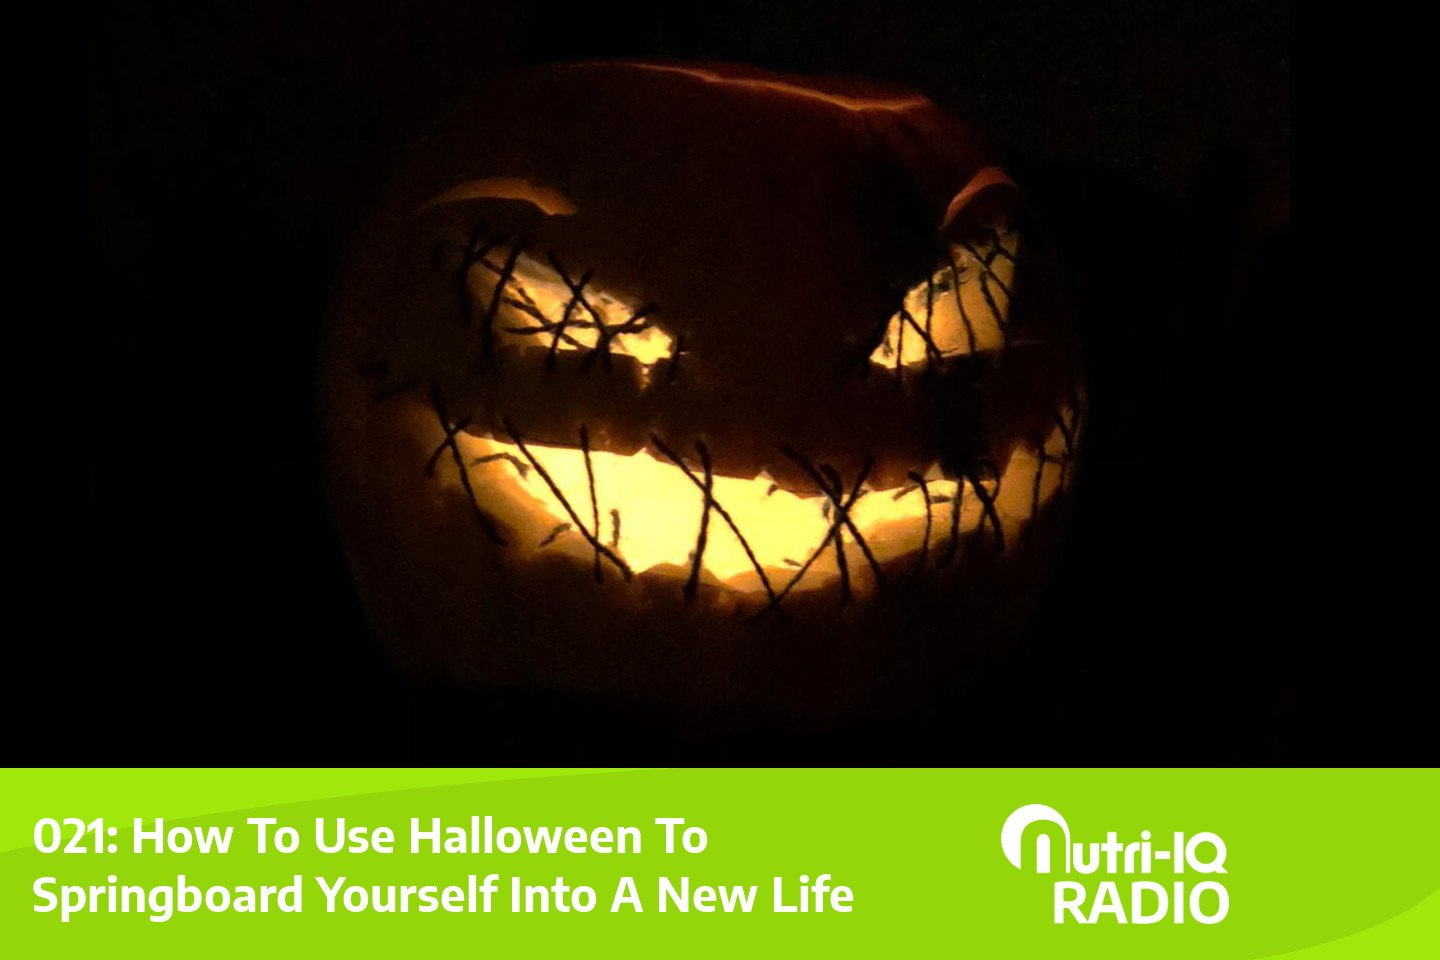 021: Use Halloween To Springboard Yourself Into A New Life